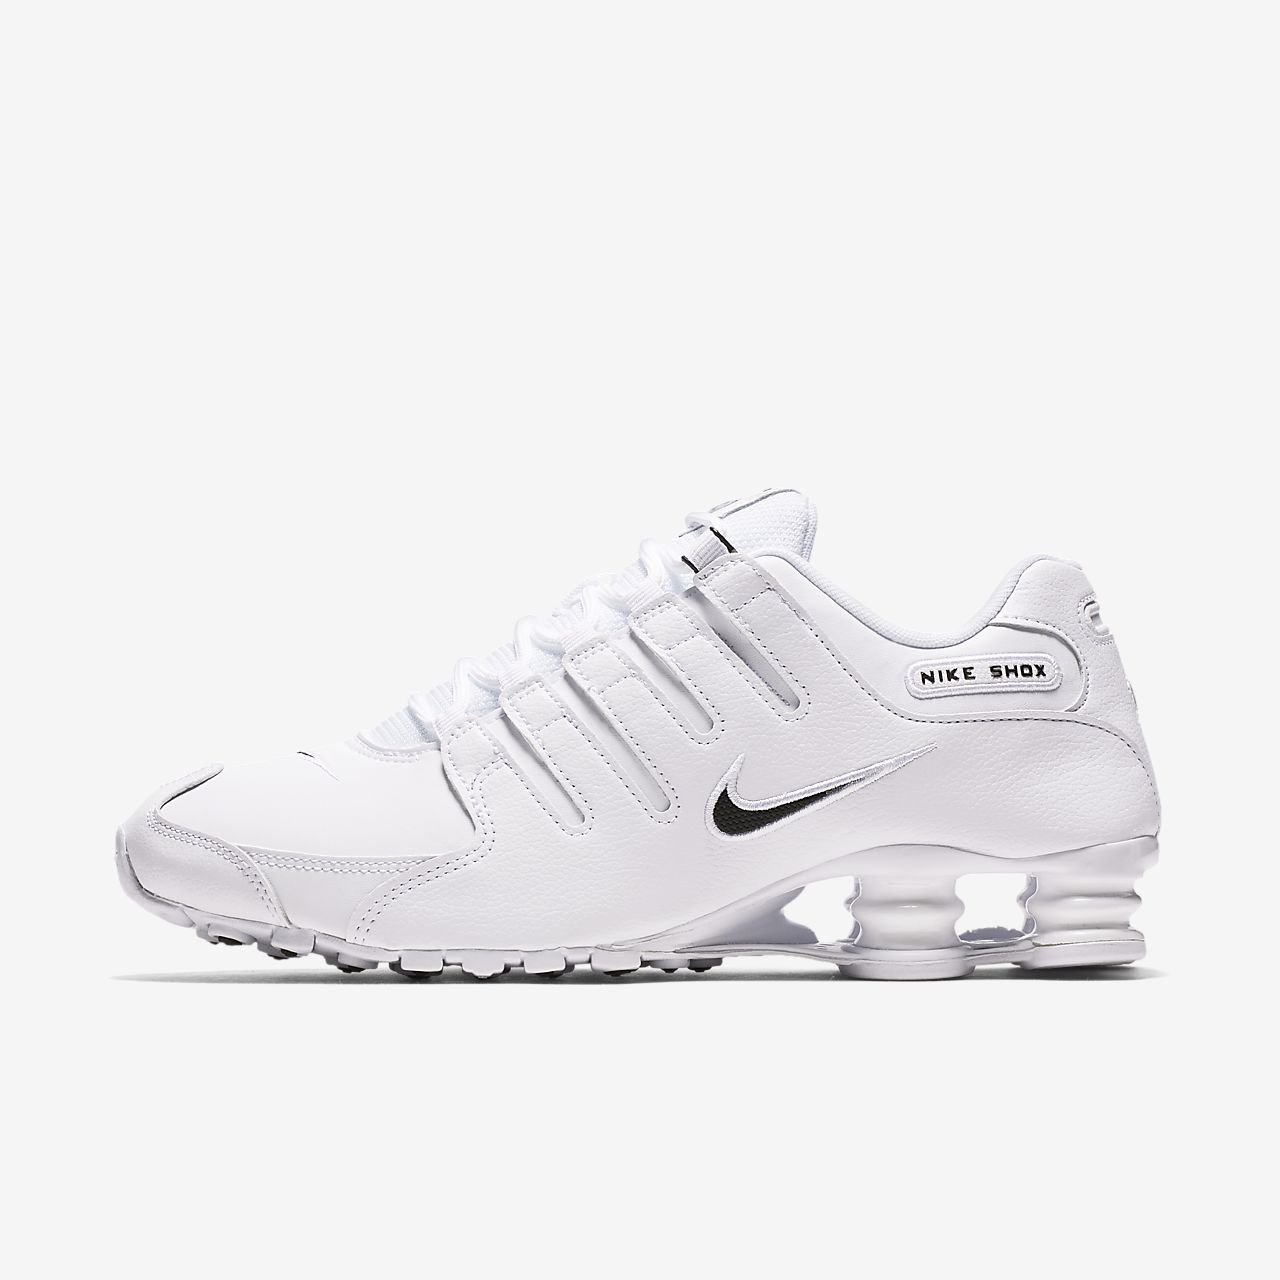 Nike Shox NZ EU Men's Shoe